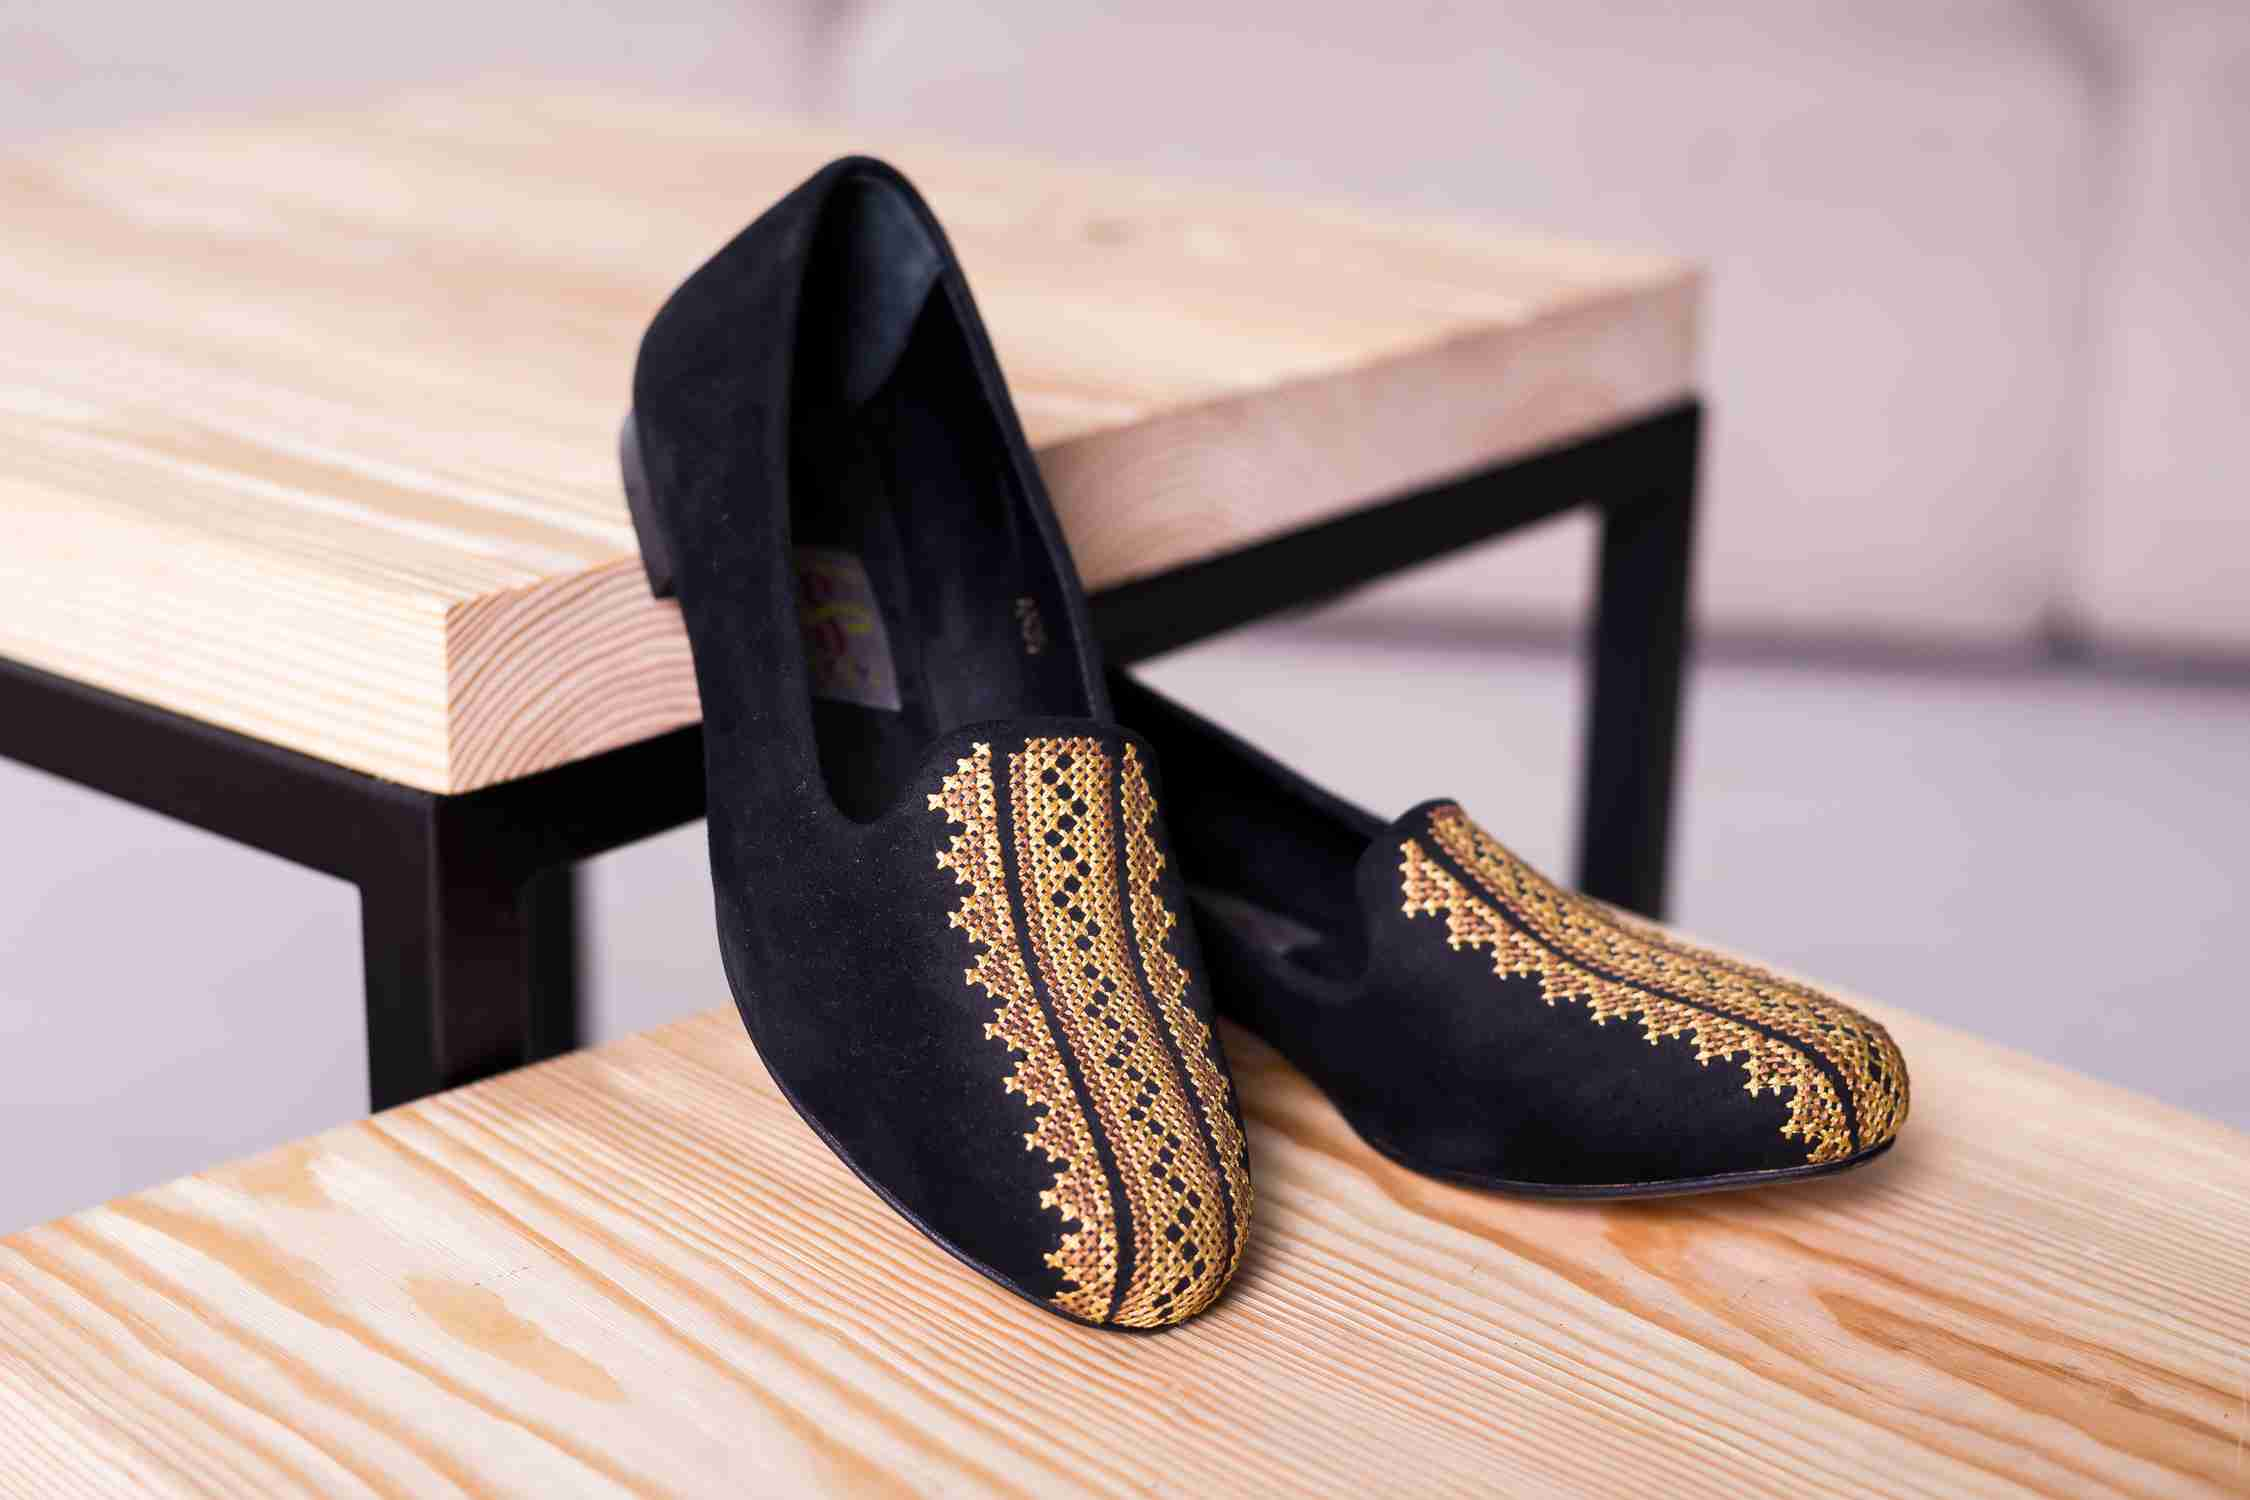 Women's shoes with embroidery